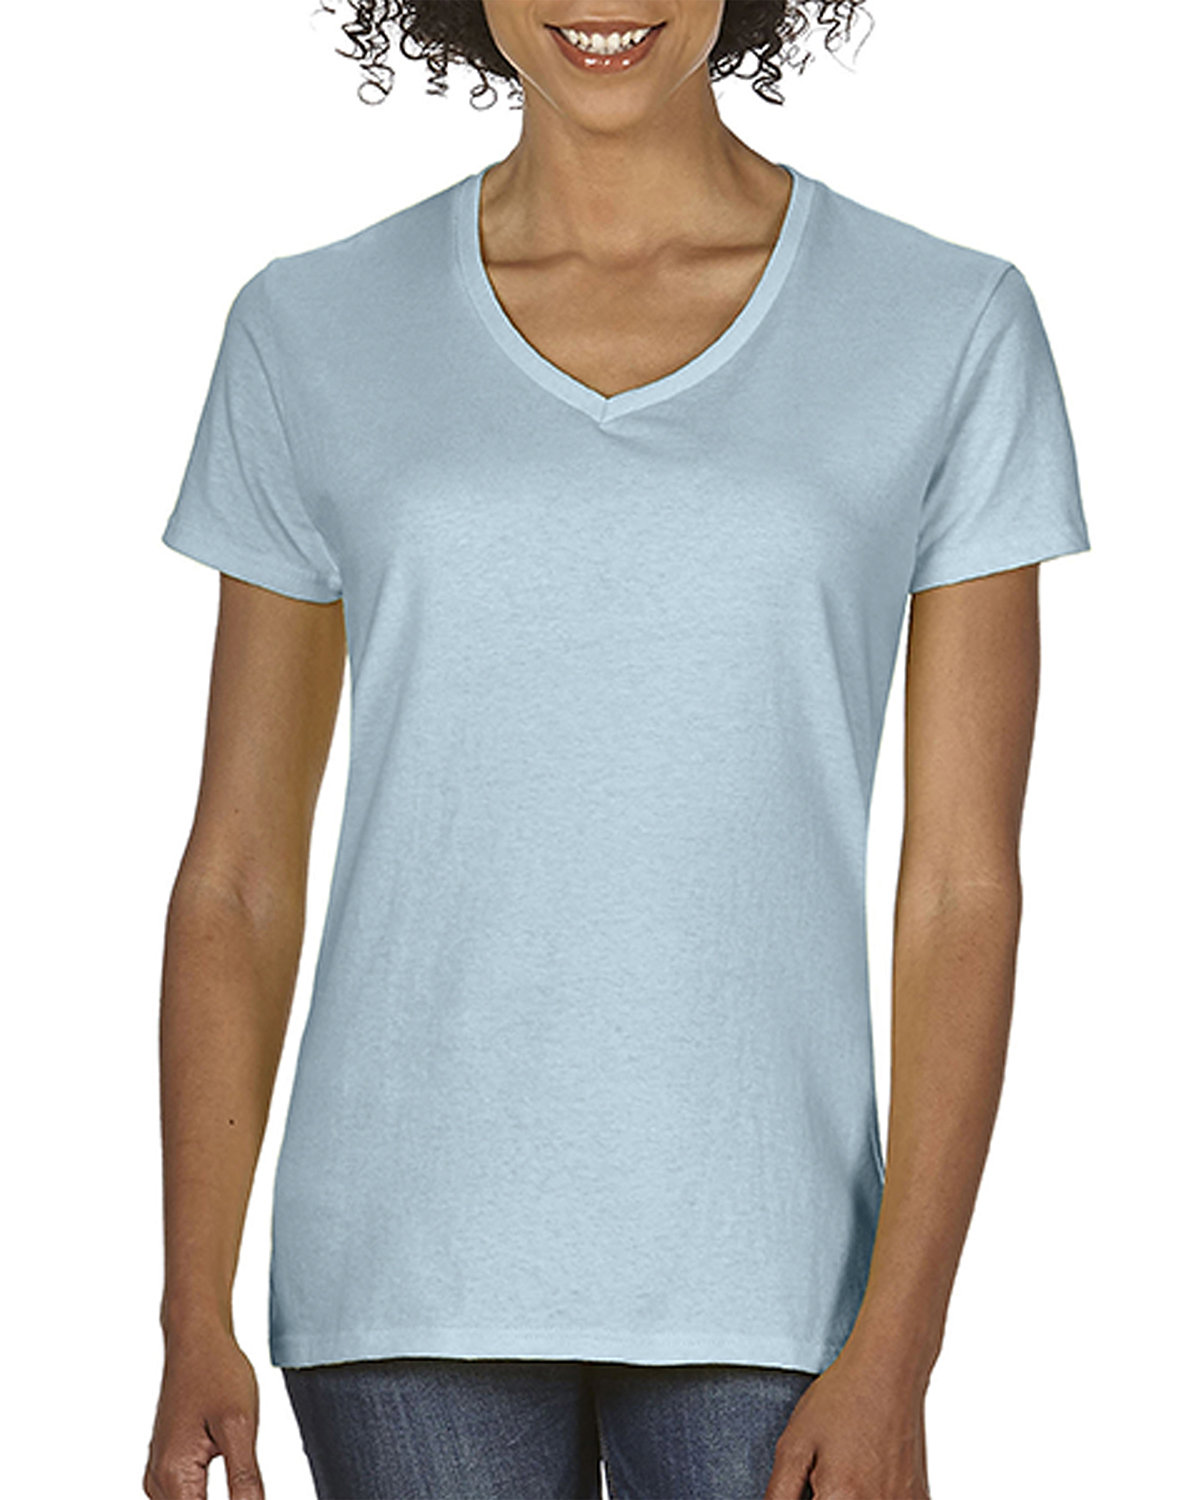 Comfort Colors Ladies' Midweight V-Neck T-Shirt CHAMBRAY